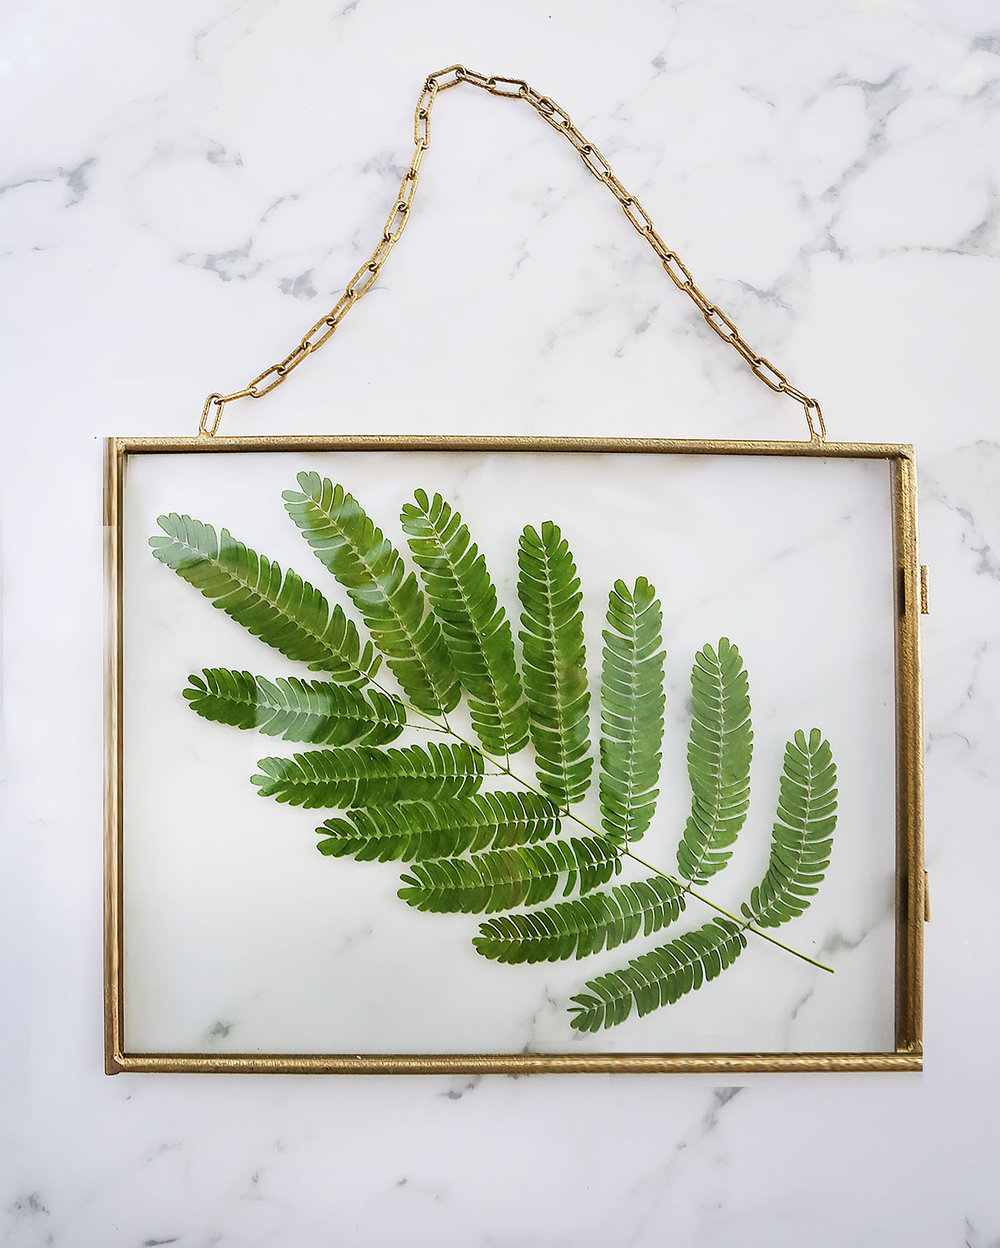 pressed-plant-diy-3-blog.jpg